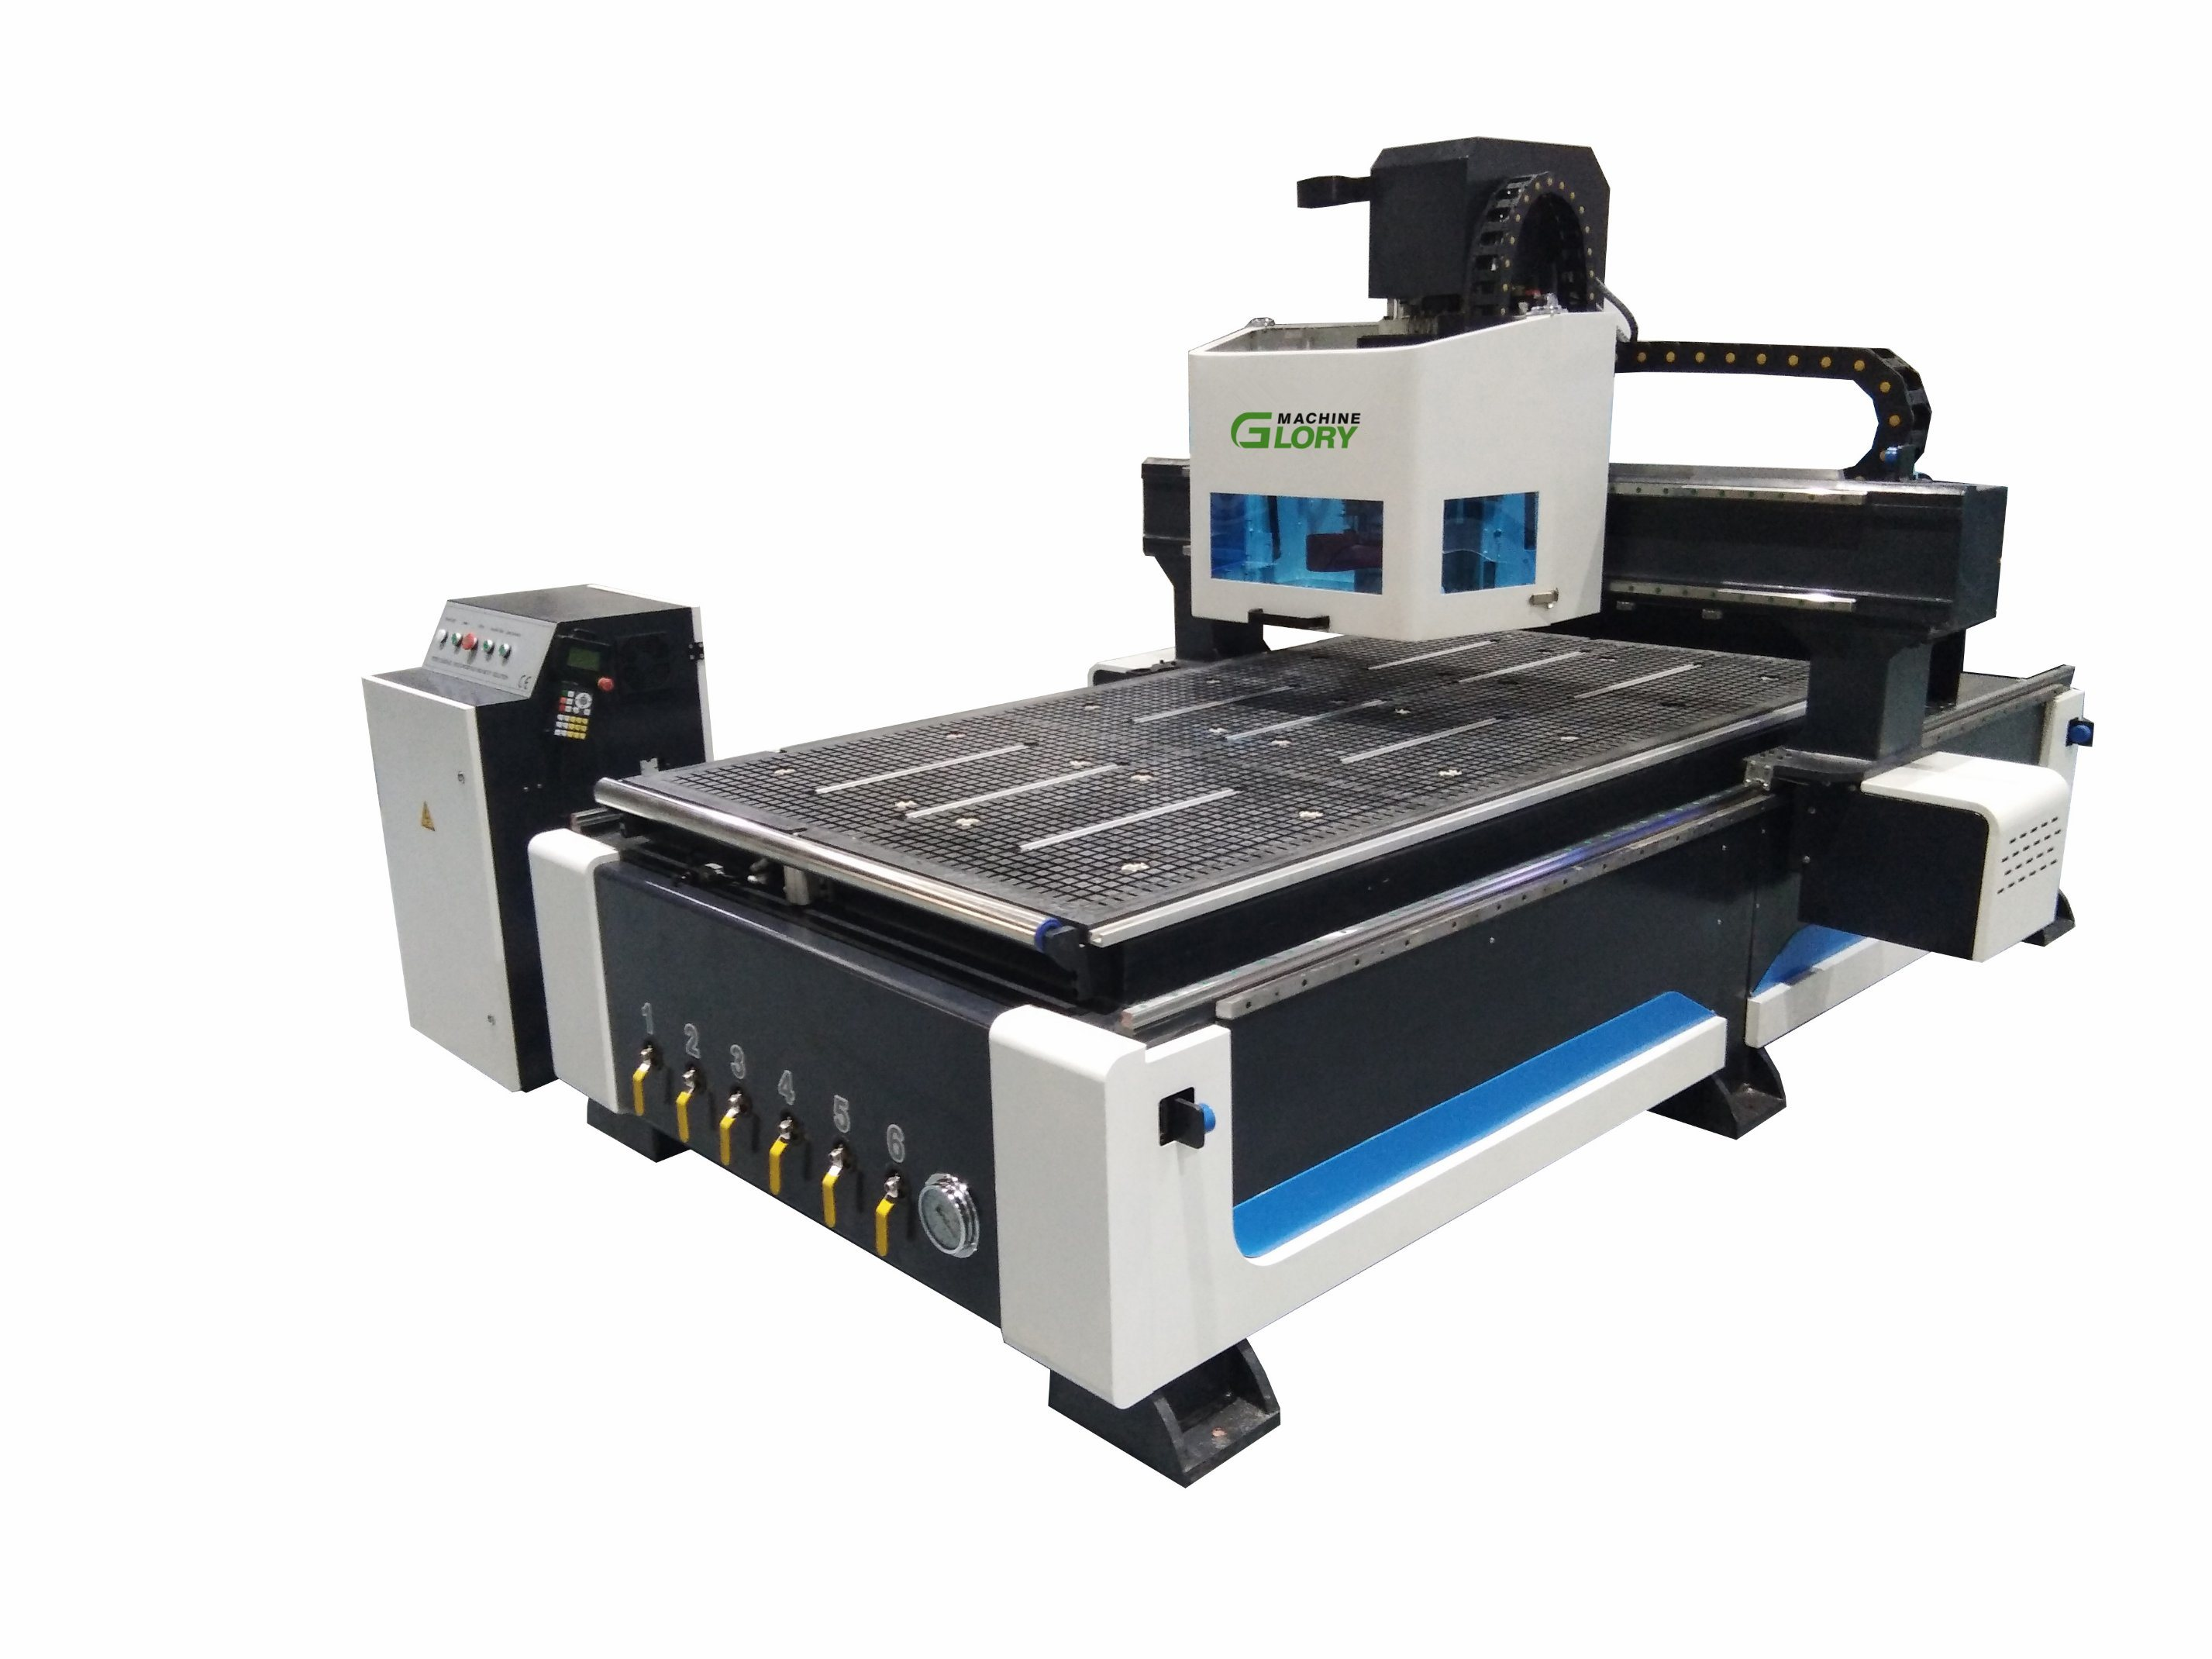 China Woodworking CNC Router PC/CNC Wood Cutting Machine/Woodworking CNC  Router/CNC Router Engraving Machine for Cabinets - China CNC Router, ...